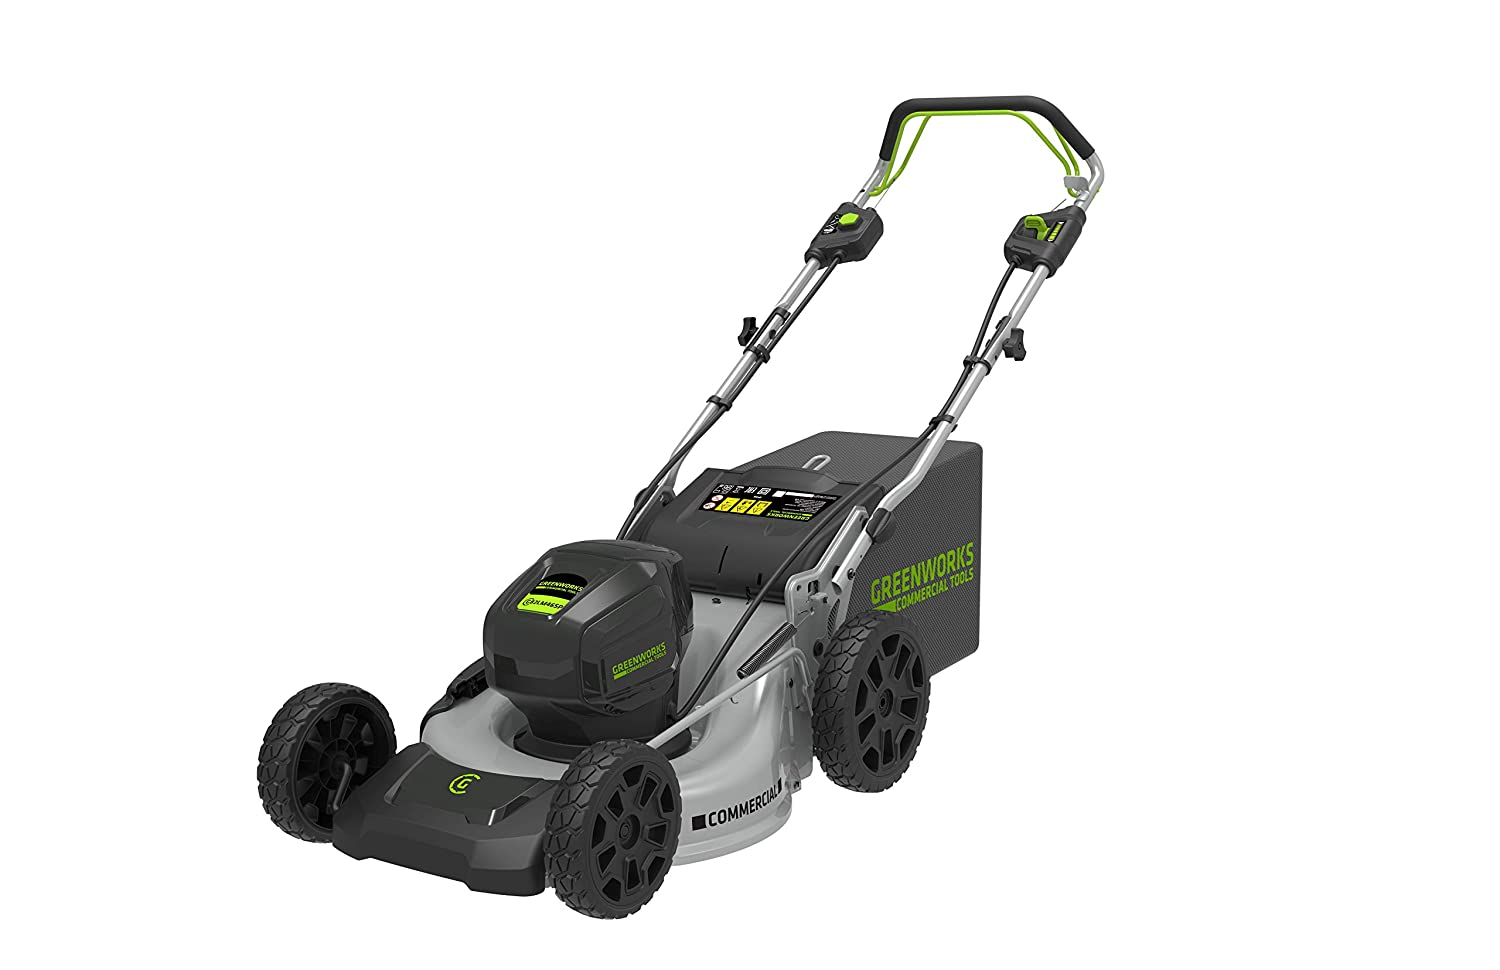 Greenworks GC82LM46SP Cortacésped Inalámbrico, Gris/Negro: Amazon ...